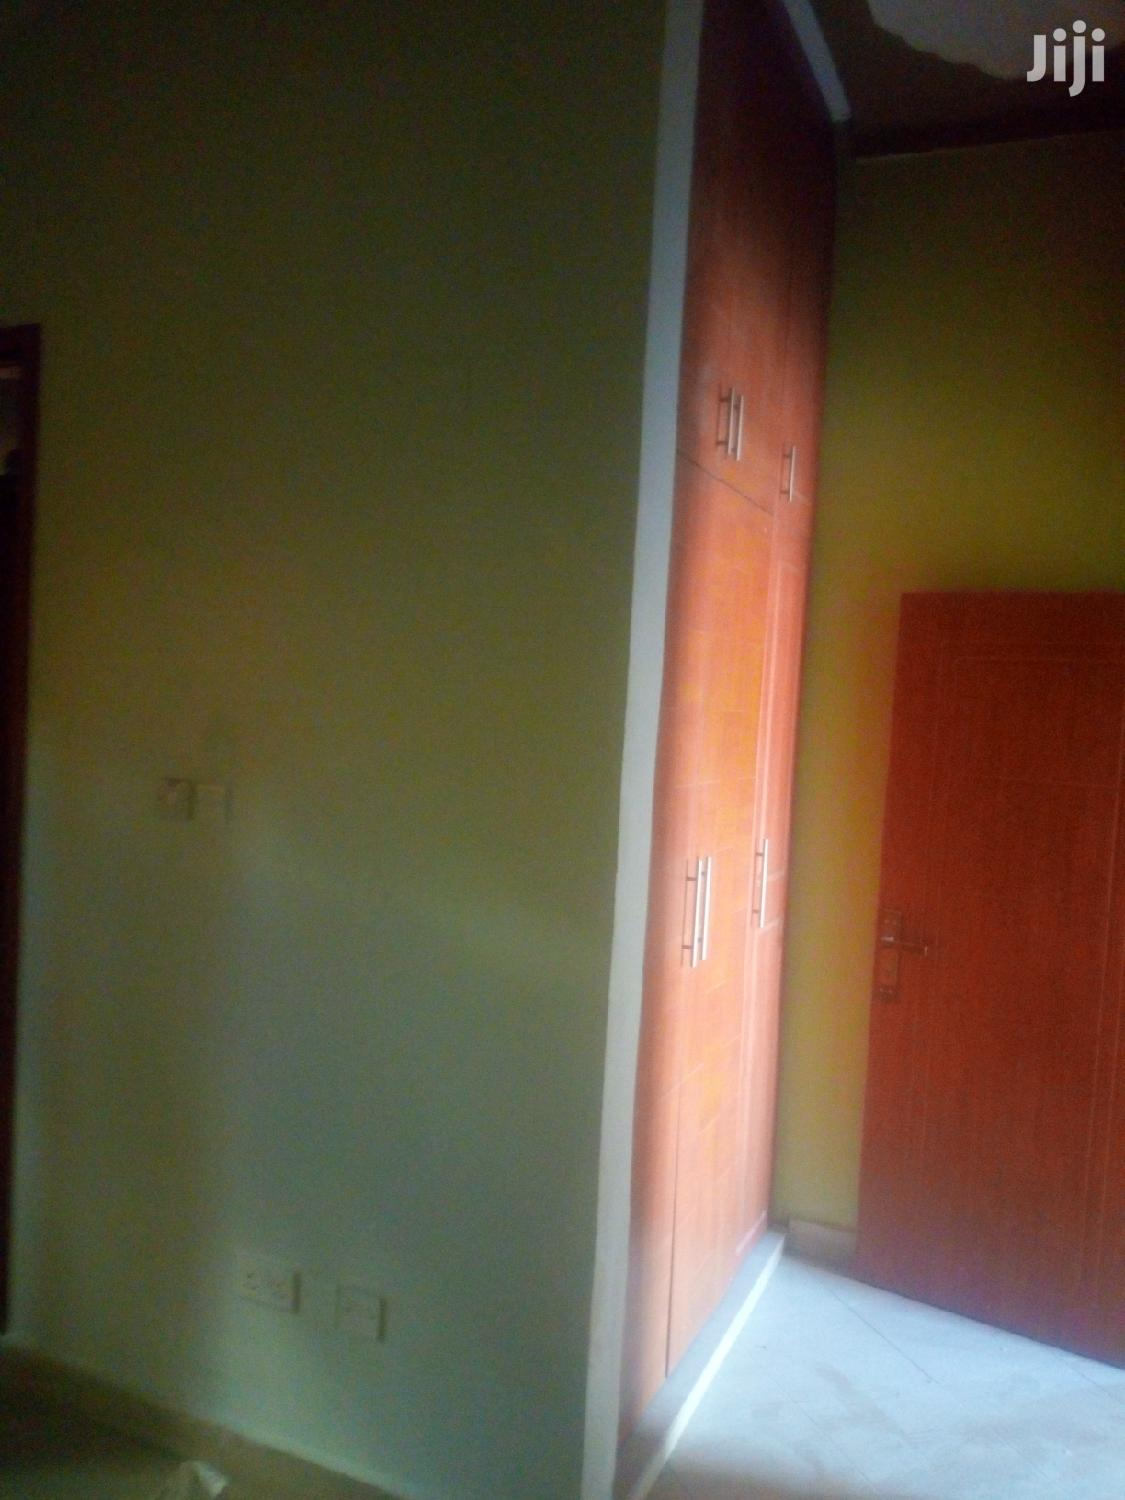 Archive: Bweyogerere Brand New Double Room for Rent at 250k